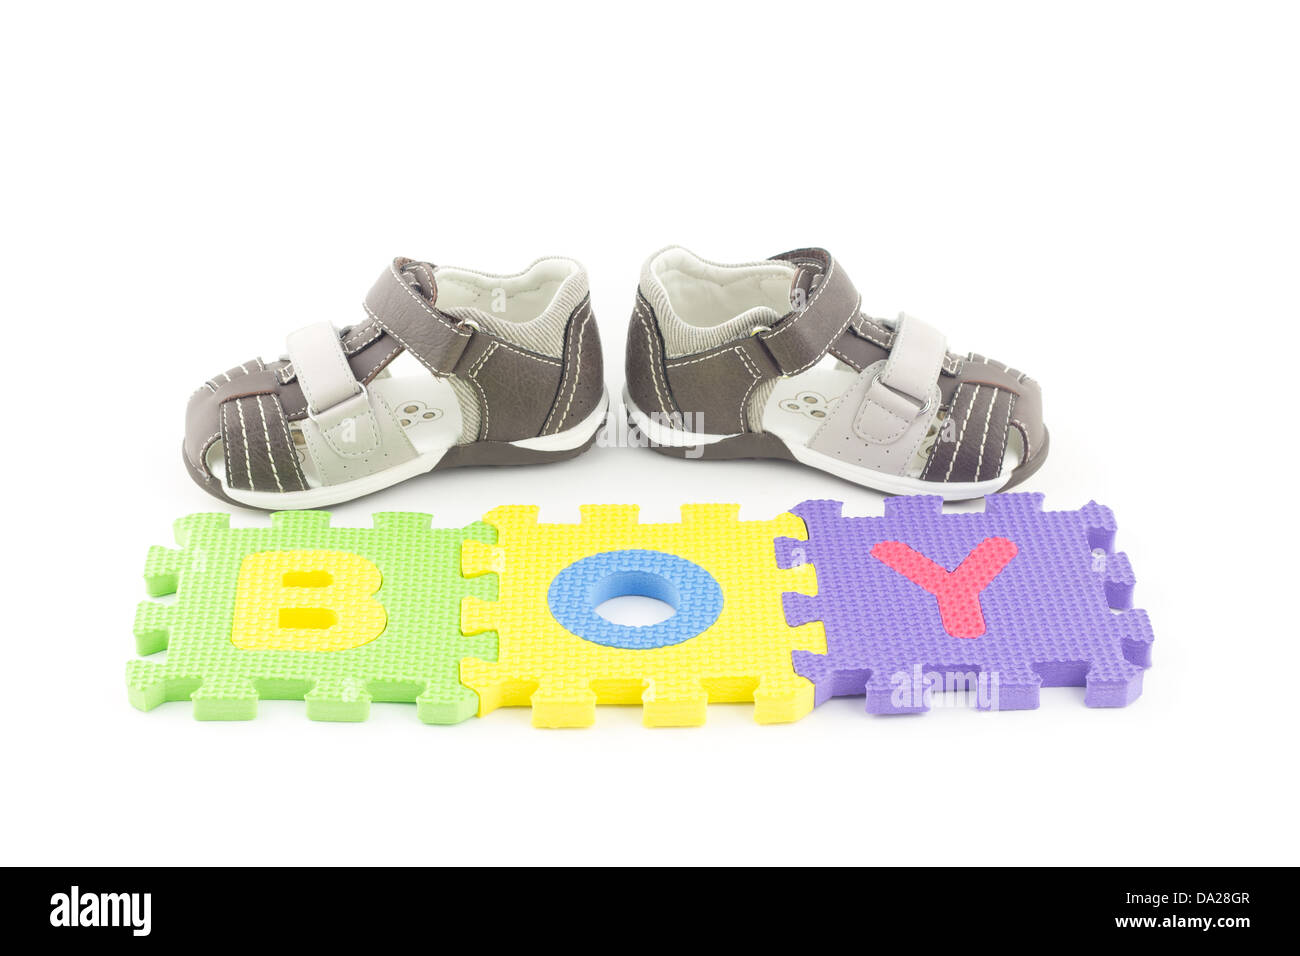 Sandals of a toddler in front of alphabet puzzle pieces isolated on white background - Stock Image